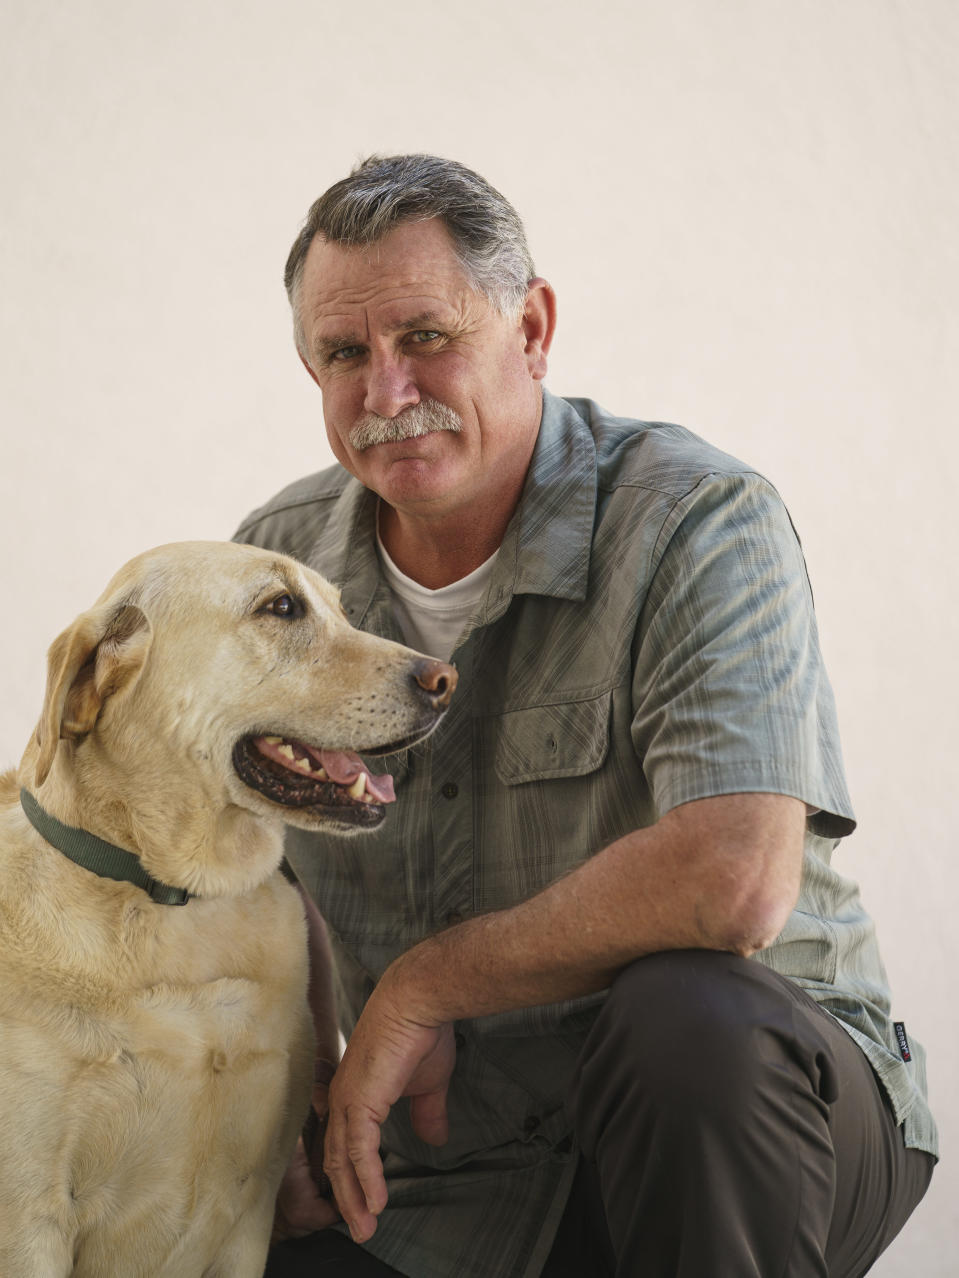 Orrin Heatlie, the main organizer for the Recall of California Gov. Newsom campaign, poses with his service dog Bailey after recording a radio program at the KABC radio station in Culver City, Calif., Saturday, March 27, 2021. (AP Photo/Damian Dovarganes)